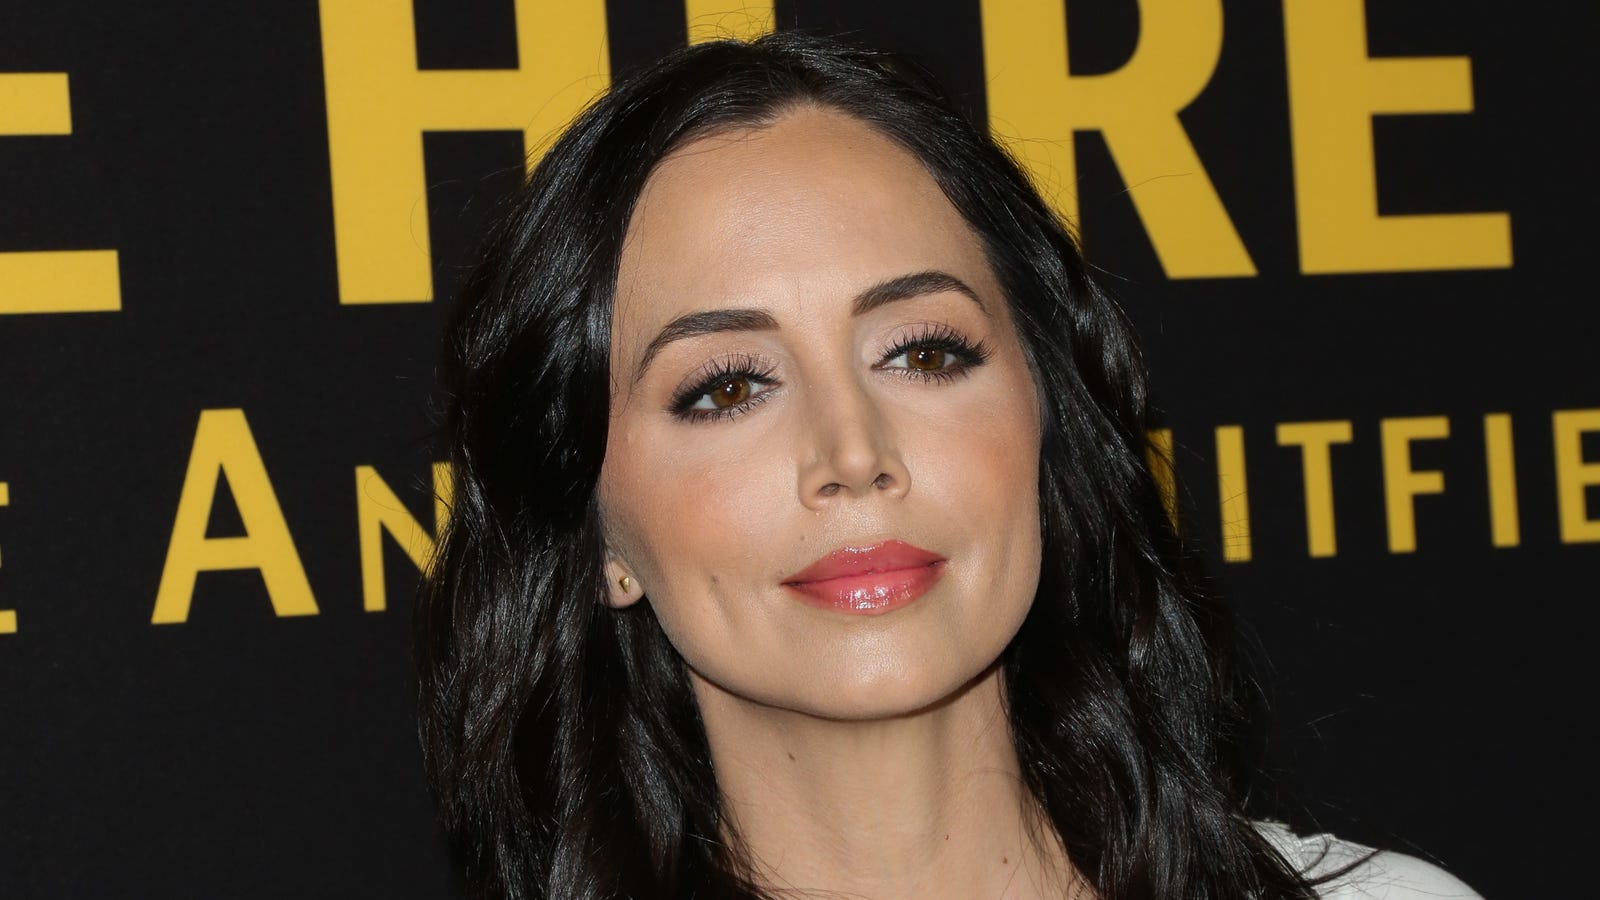 Eliza Dushku accuses True Lies stunt coordinator Joel Kramer of sexually assaulting her when she was 12 years old